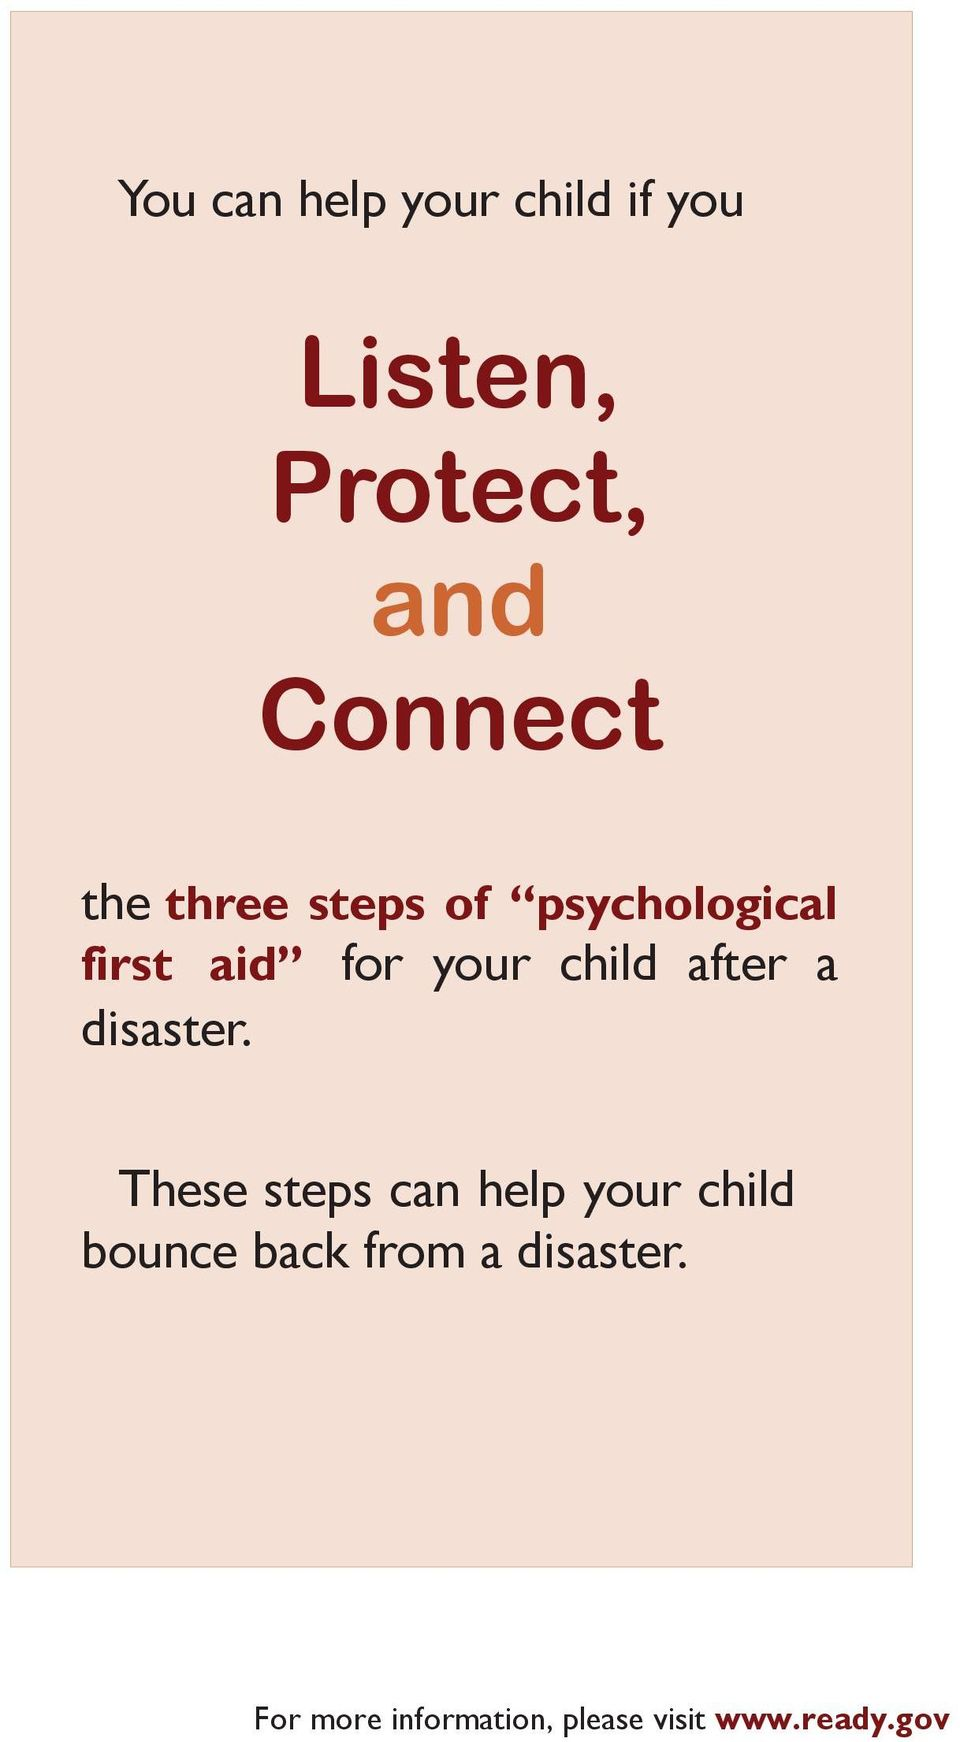 psychological first aid for your child after a